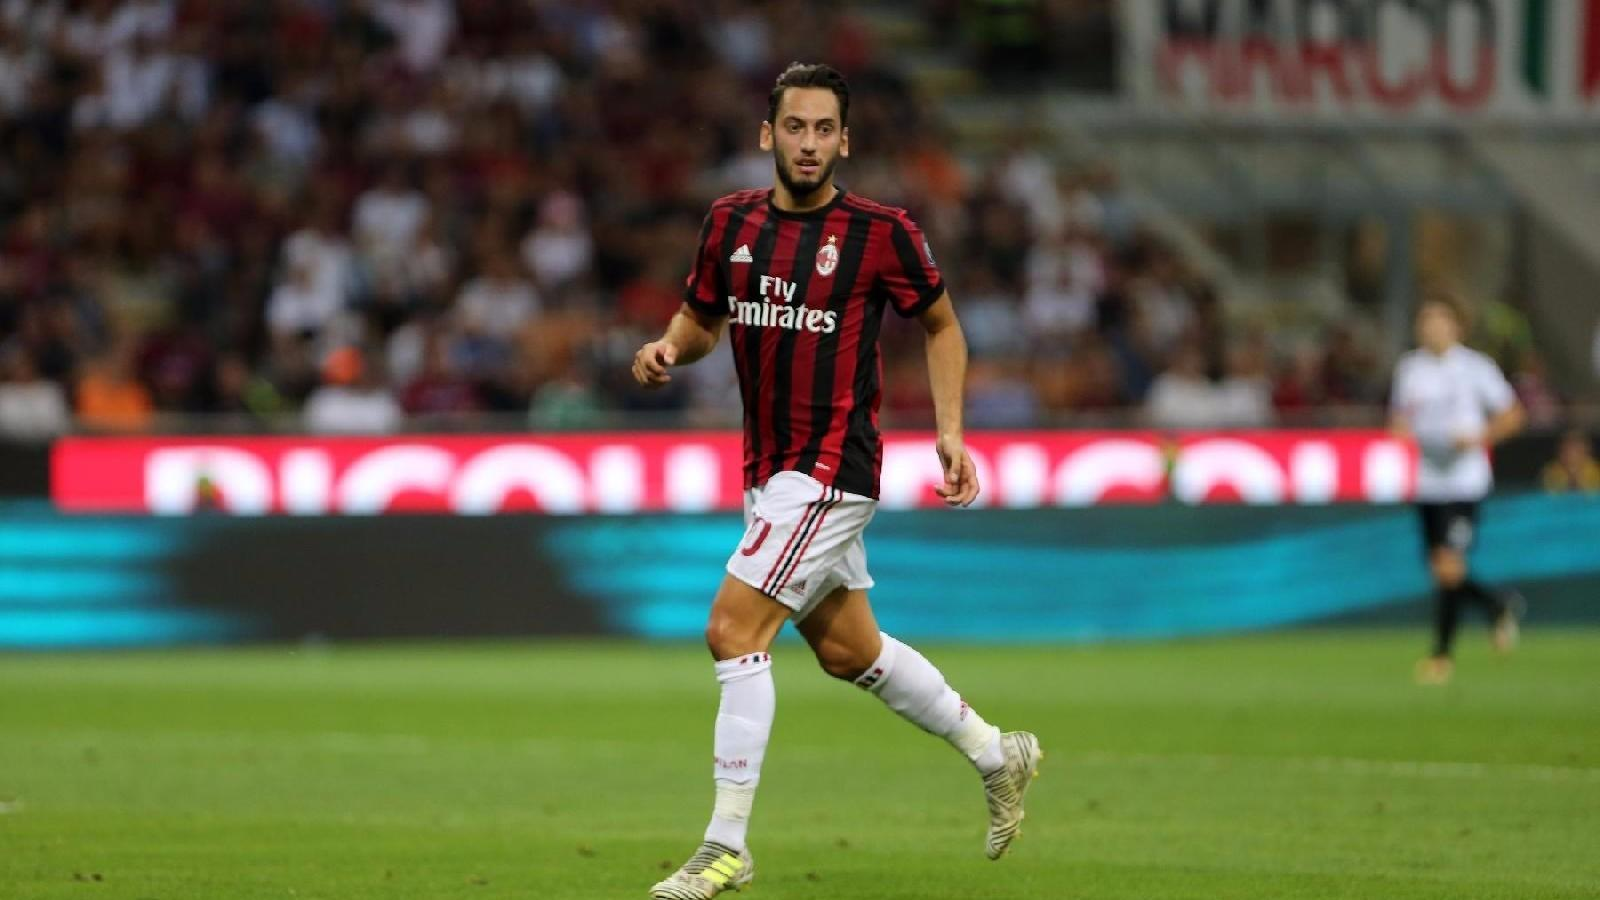 Milan-Rijeka, infortunio per Calhanoglu: sostituito all'intervallo da Vincenzo Montella